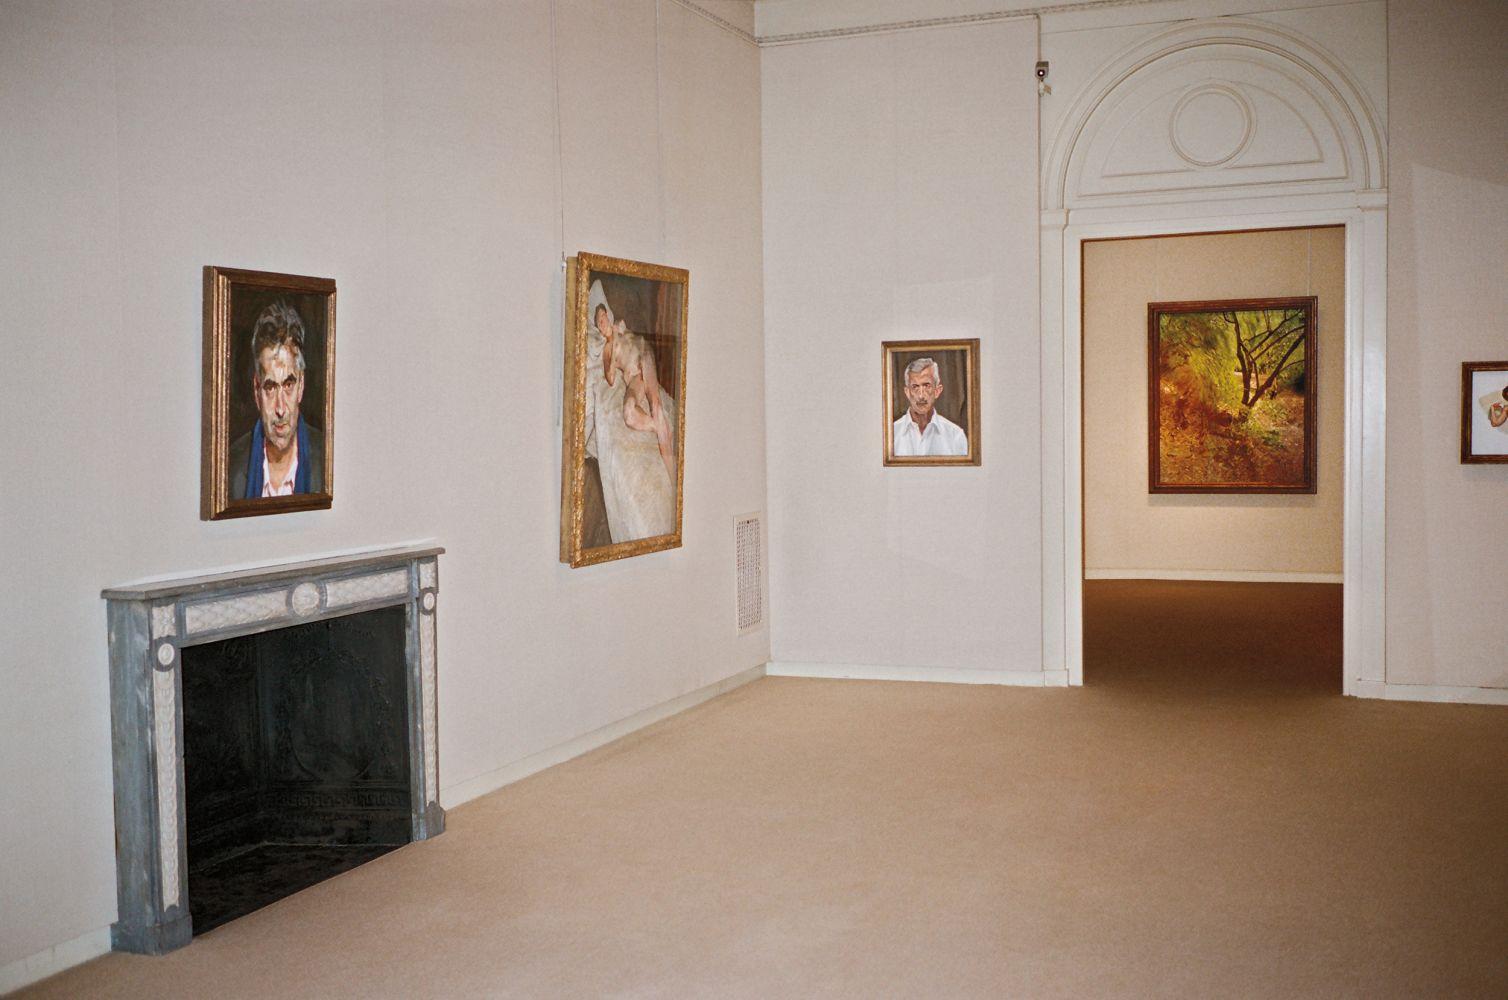 Installation view of Lucian Freud: Recent Work, 2006